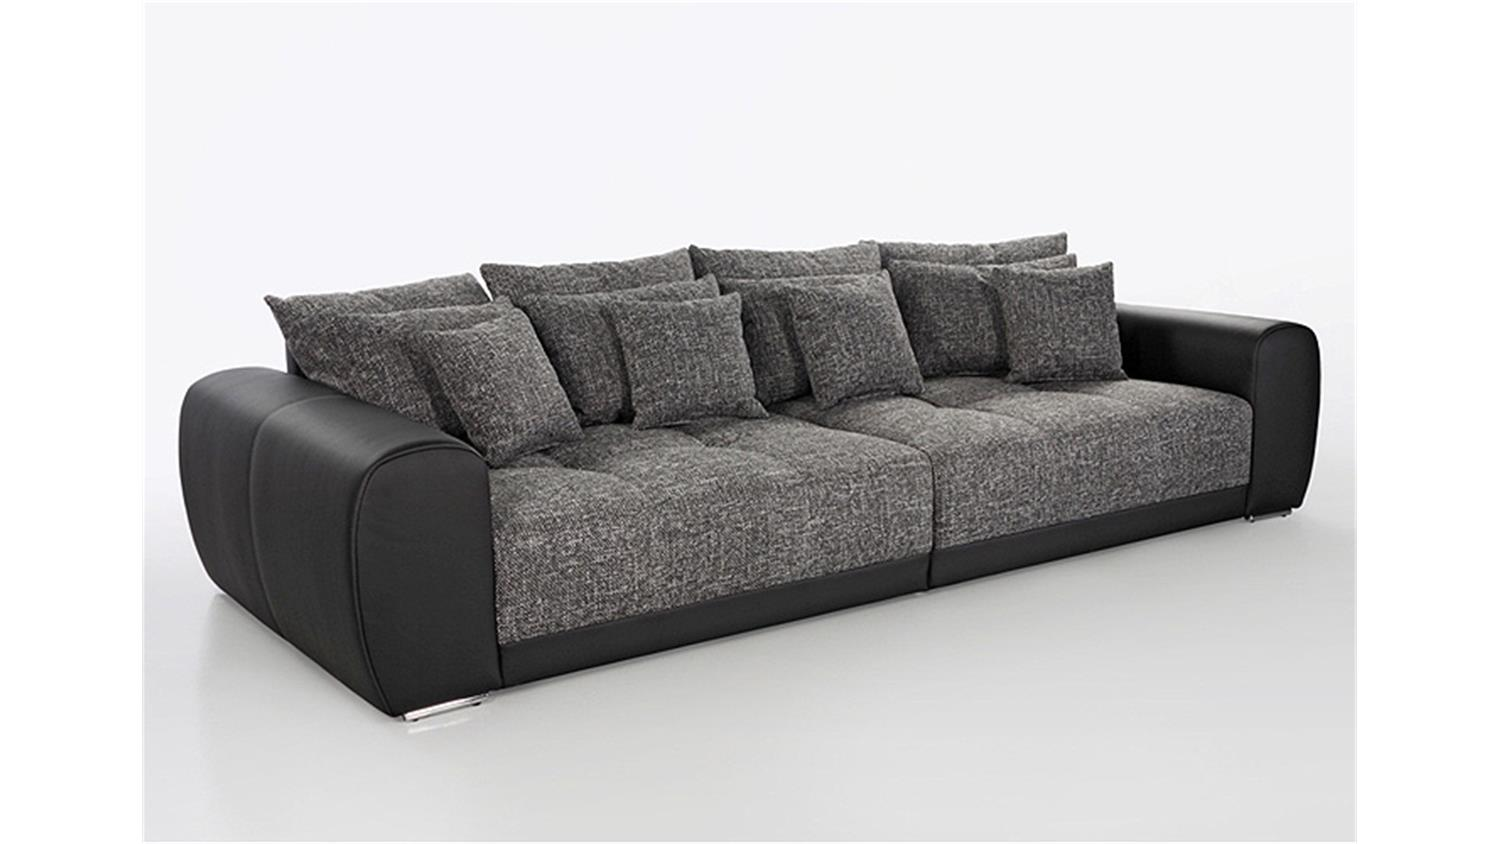 Big Sofa Leder Schwarz ~ CARPROLA for -> Ecksofa Leder Mit Hocker